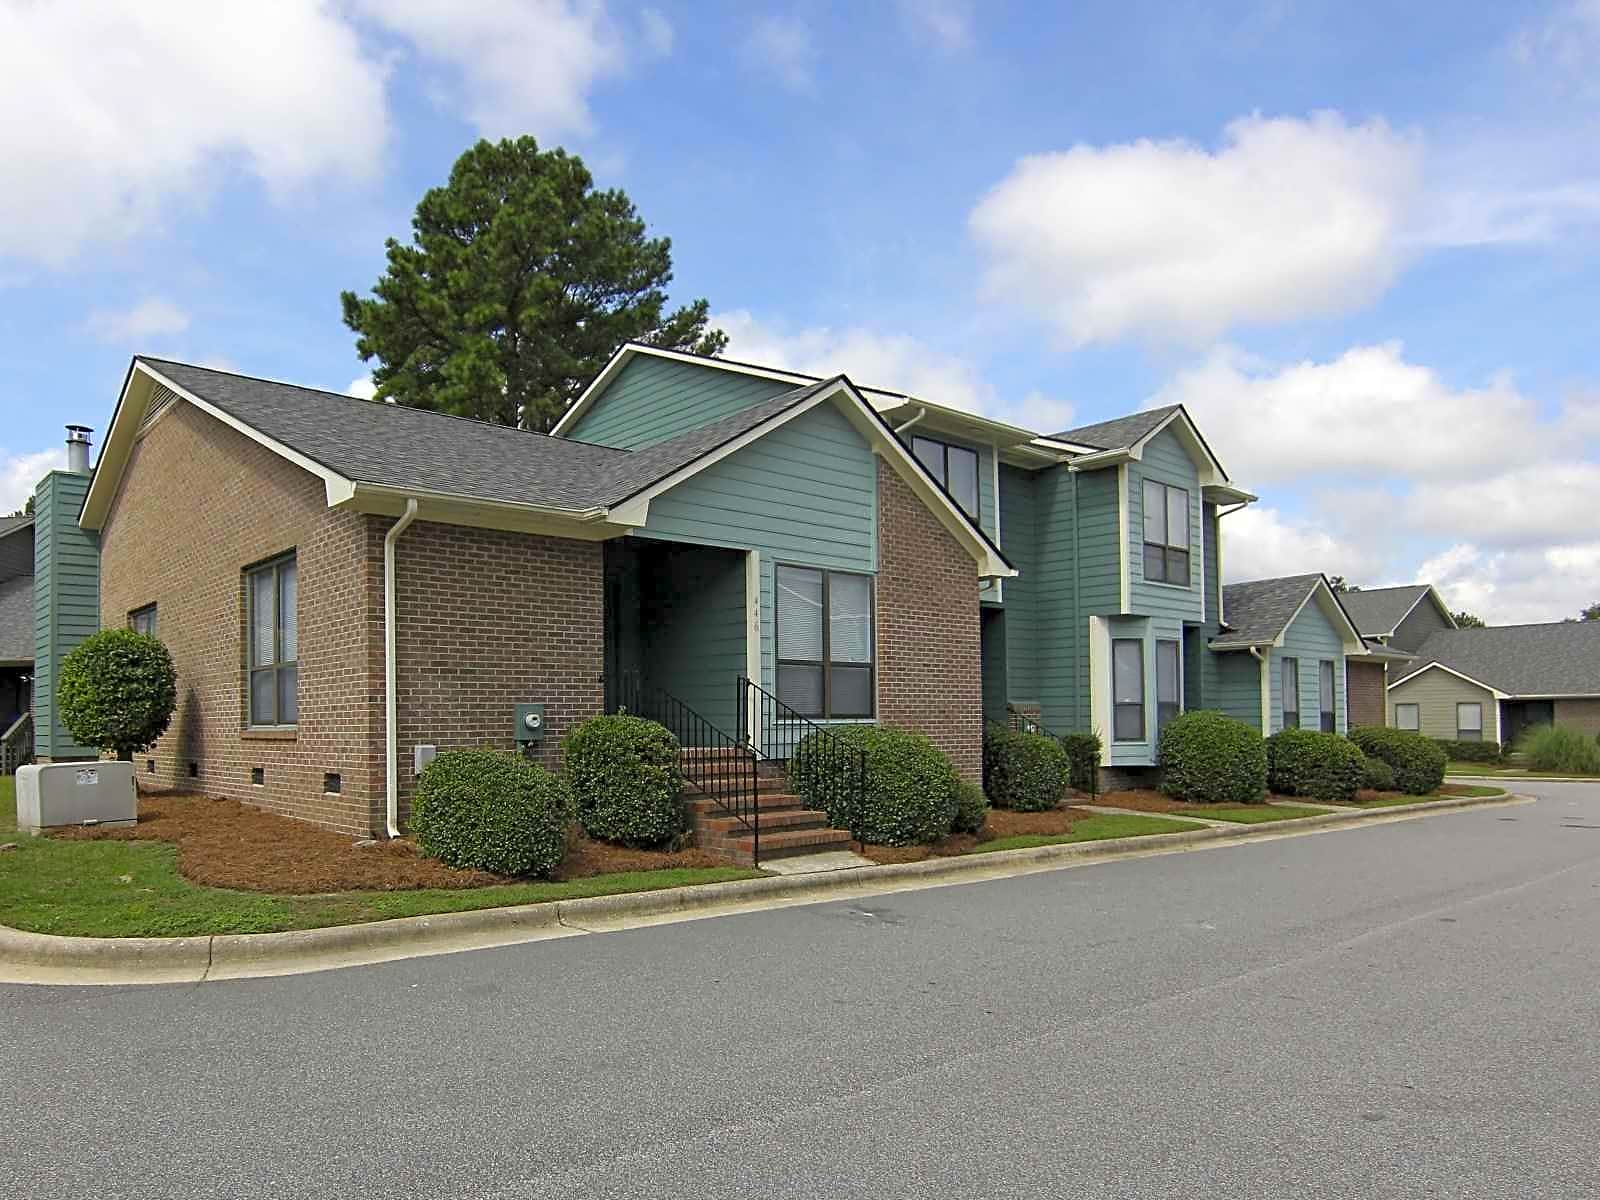 Photo: Fayetteville Apartment for Rent - $799.00 / month; 2 Bd & 2 Ba